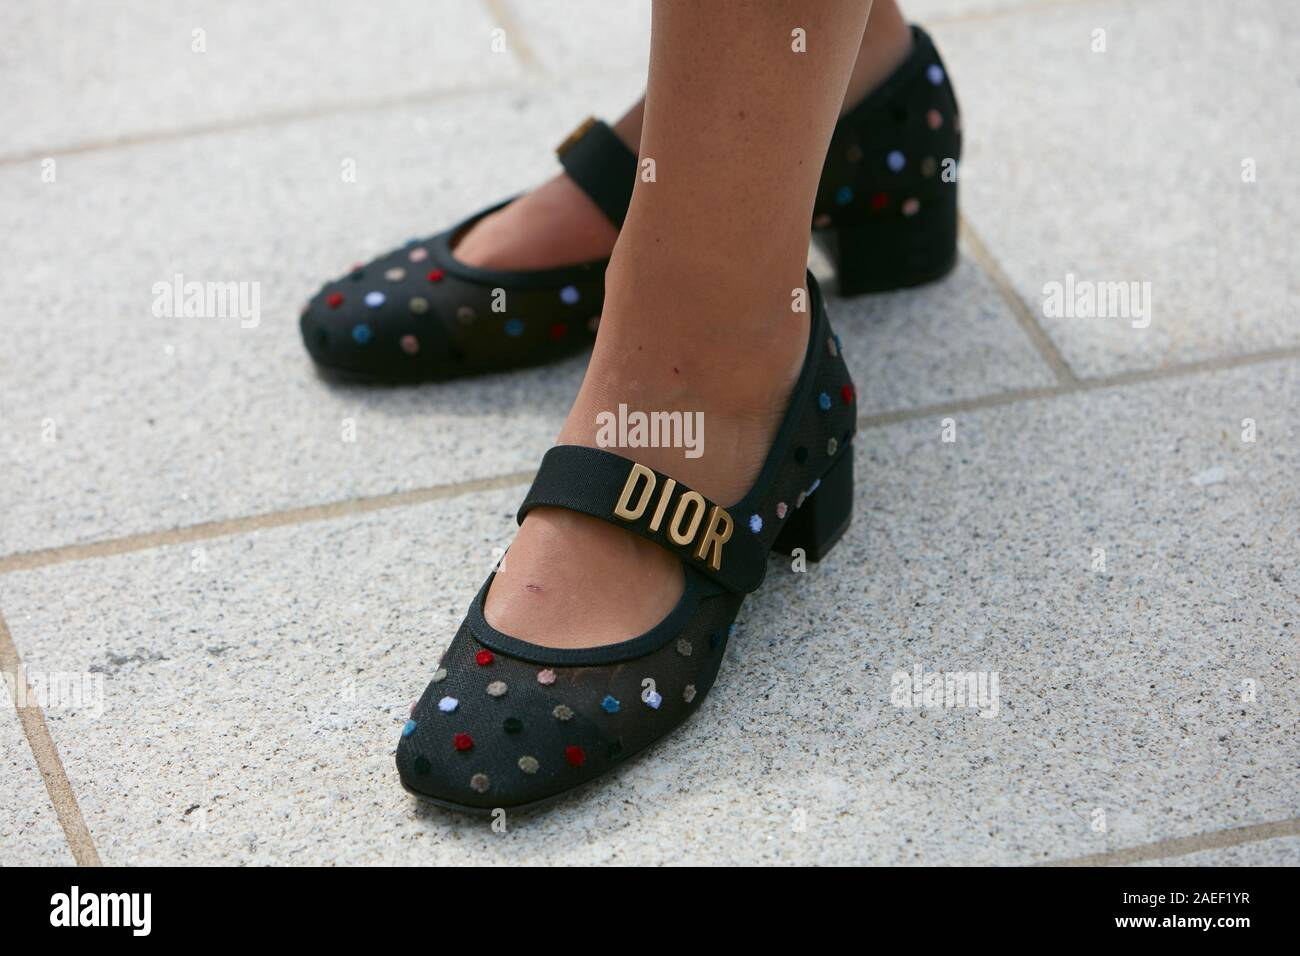 Dior Shoes High Resolution Stock